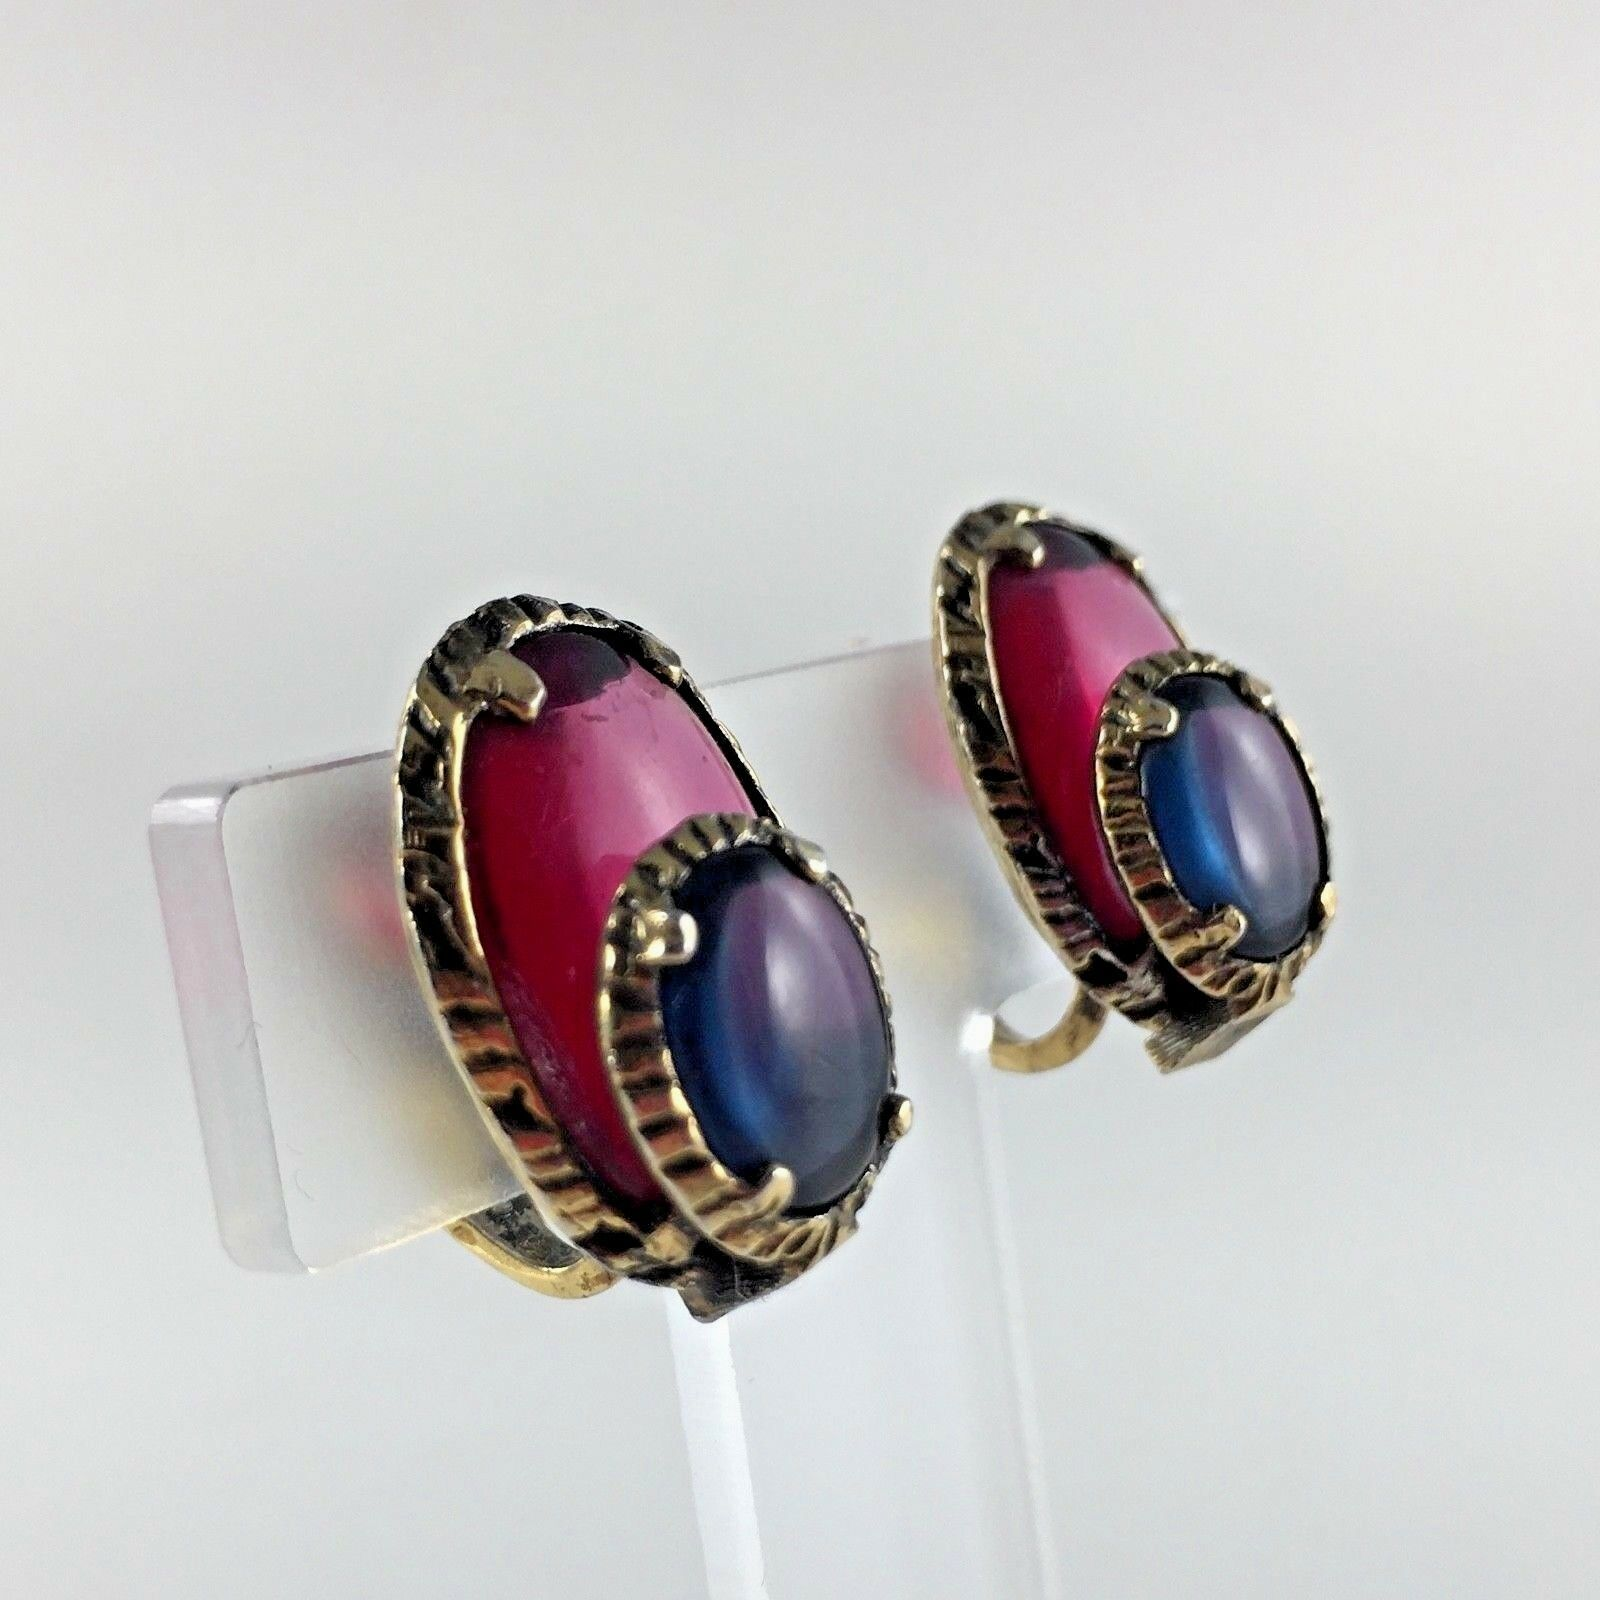 Trifari Cabochon Jelly Belly Earrings Blue Red Gold Tone Signed Vtg Woman Gift